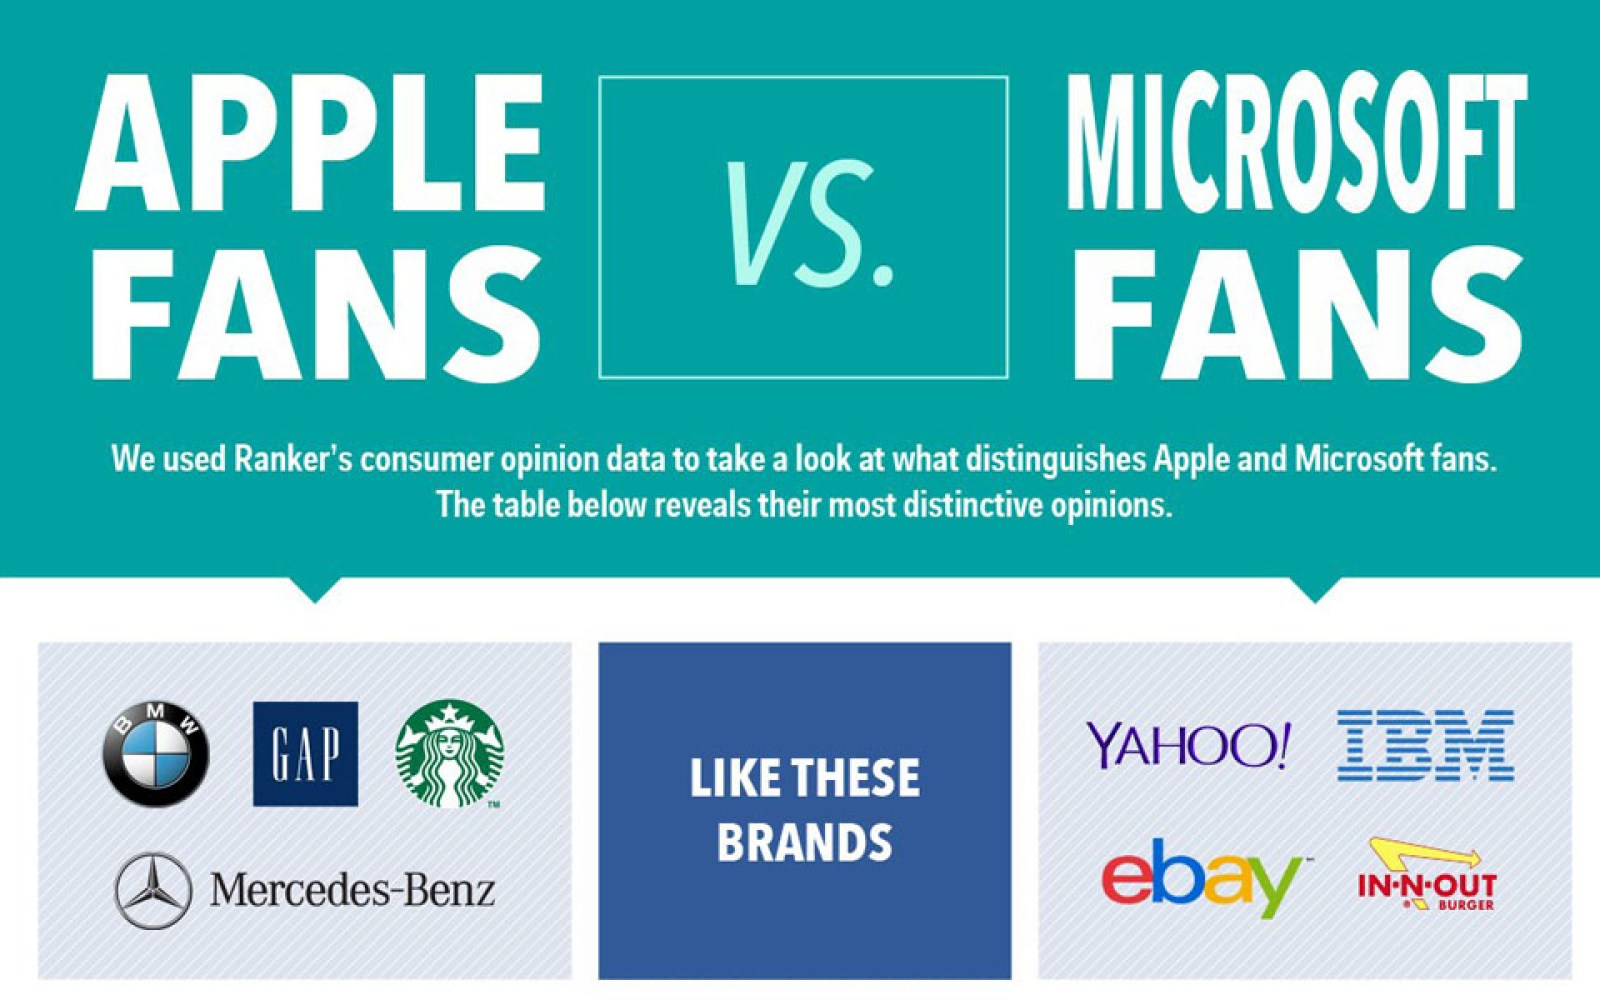 Apple fans vs Windows fans: BMW & Mercedes vs Yahoo & eBay